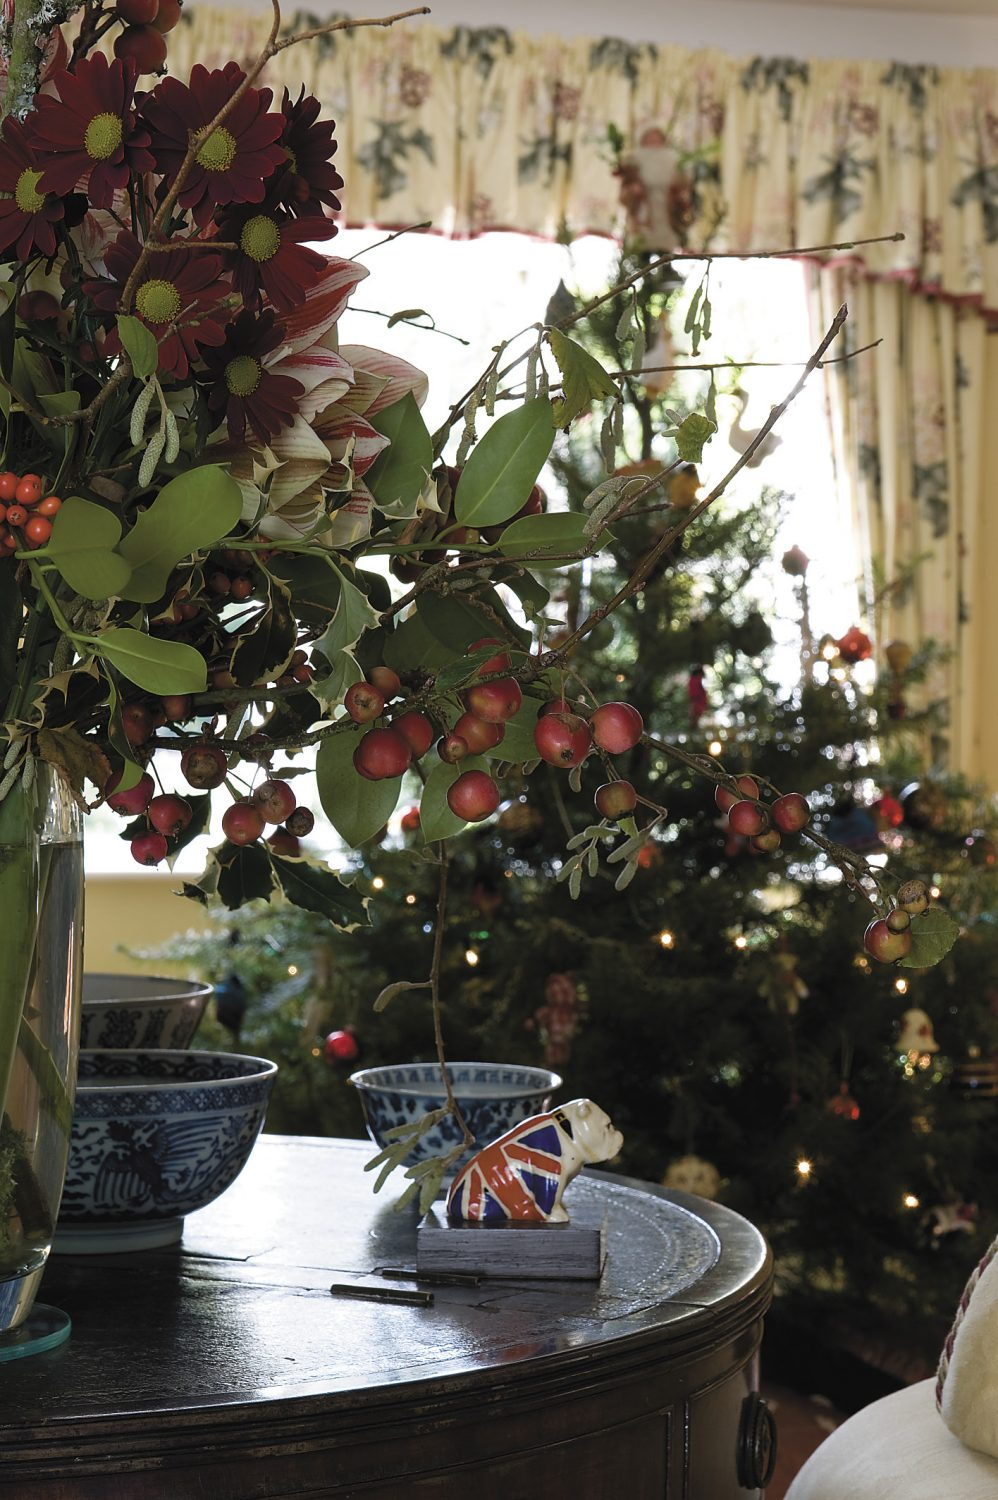 the Christmas tree stands in front of the drawing-room window